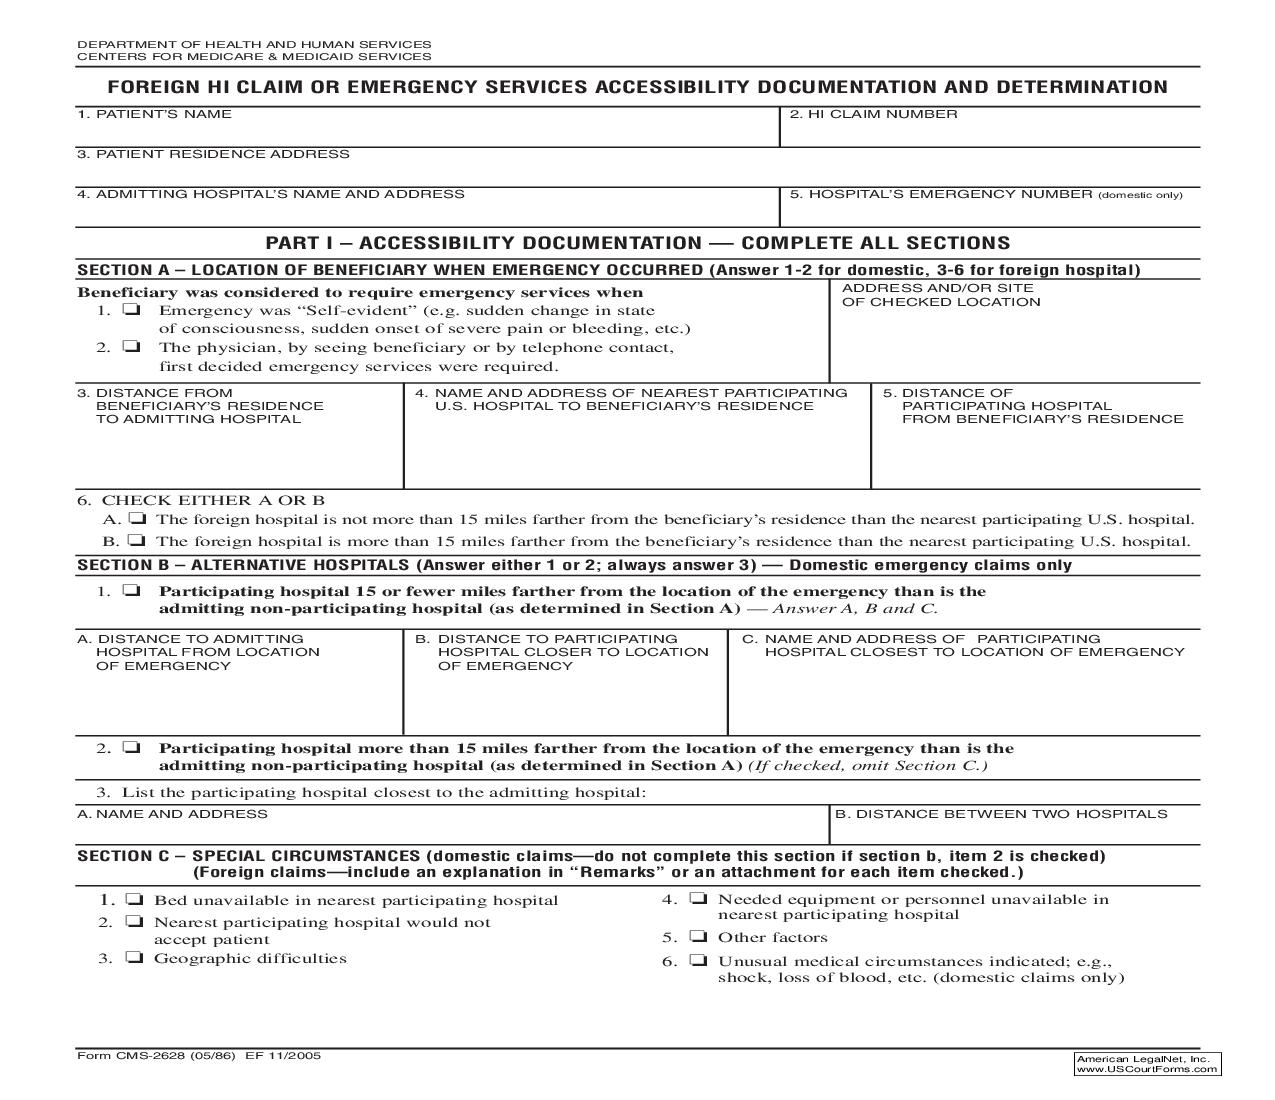 Foreign HI Claim Or Emergency Services Accessibility Documentation And Determination {CMS-2628} | Pdf Fpdf Doc Docx | Official Federal Forms